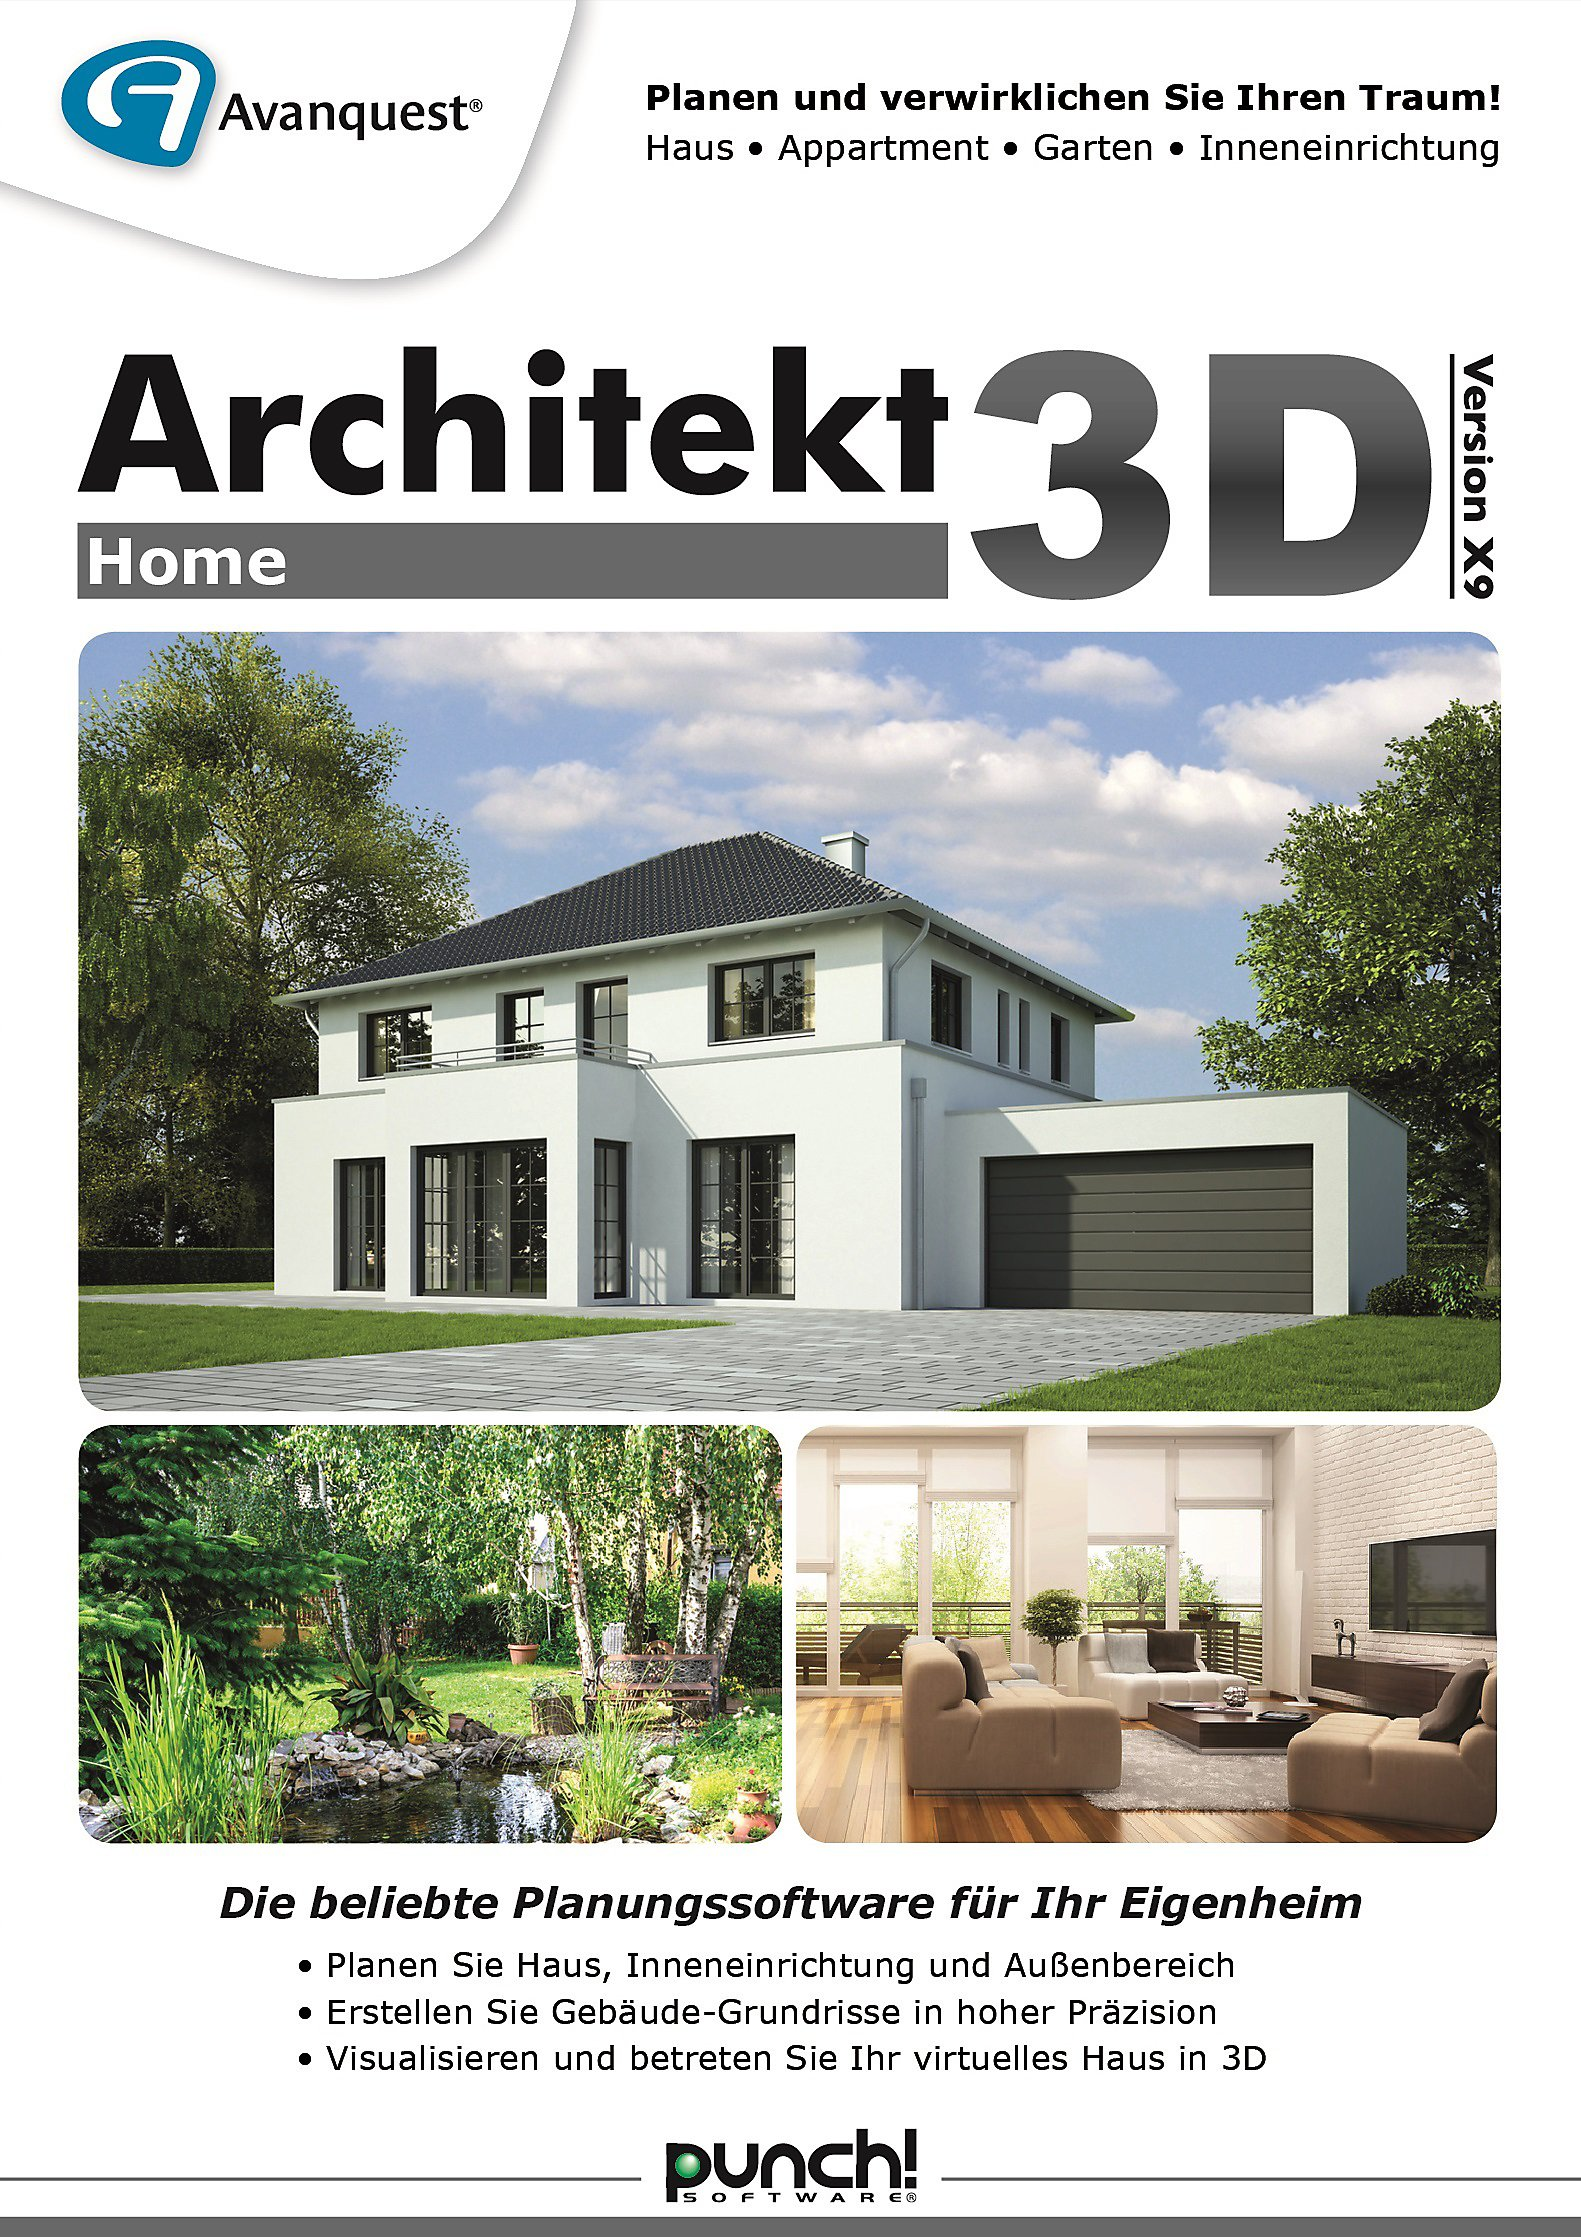 Architekt 3d X9 Home Software Games Sicher Downloaden Bei Weltbildde